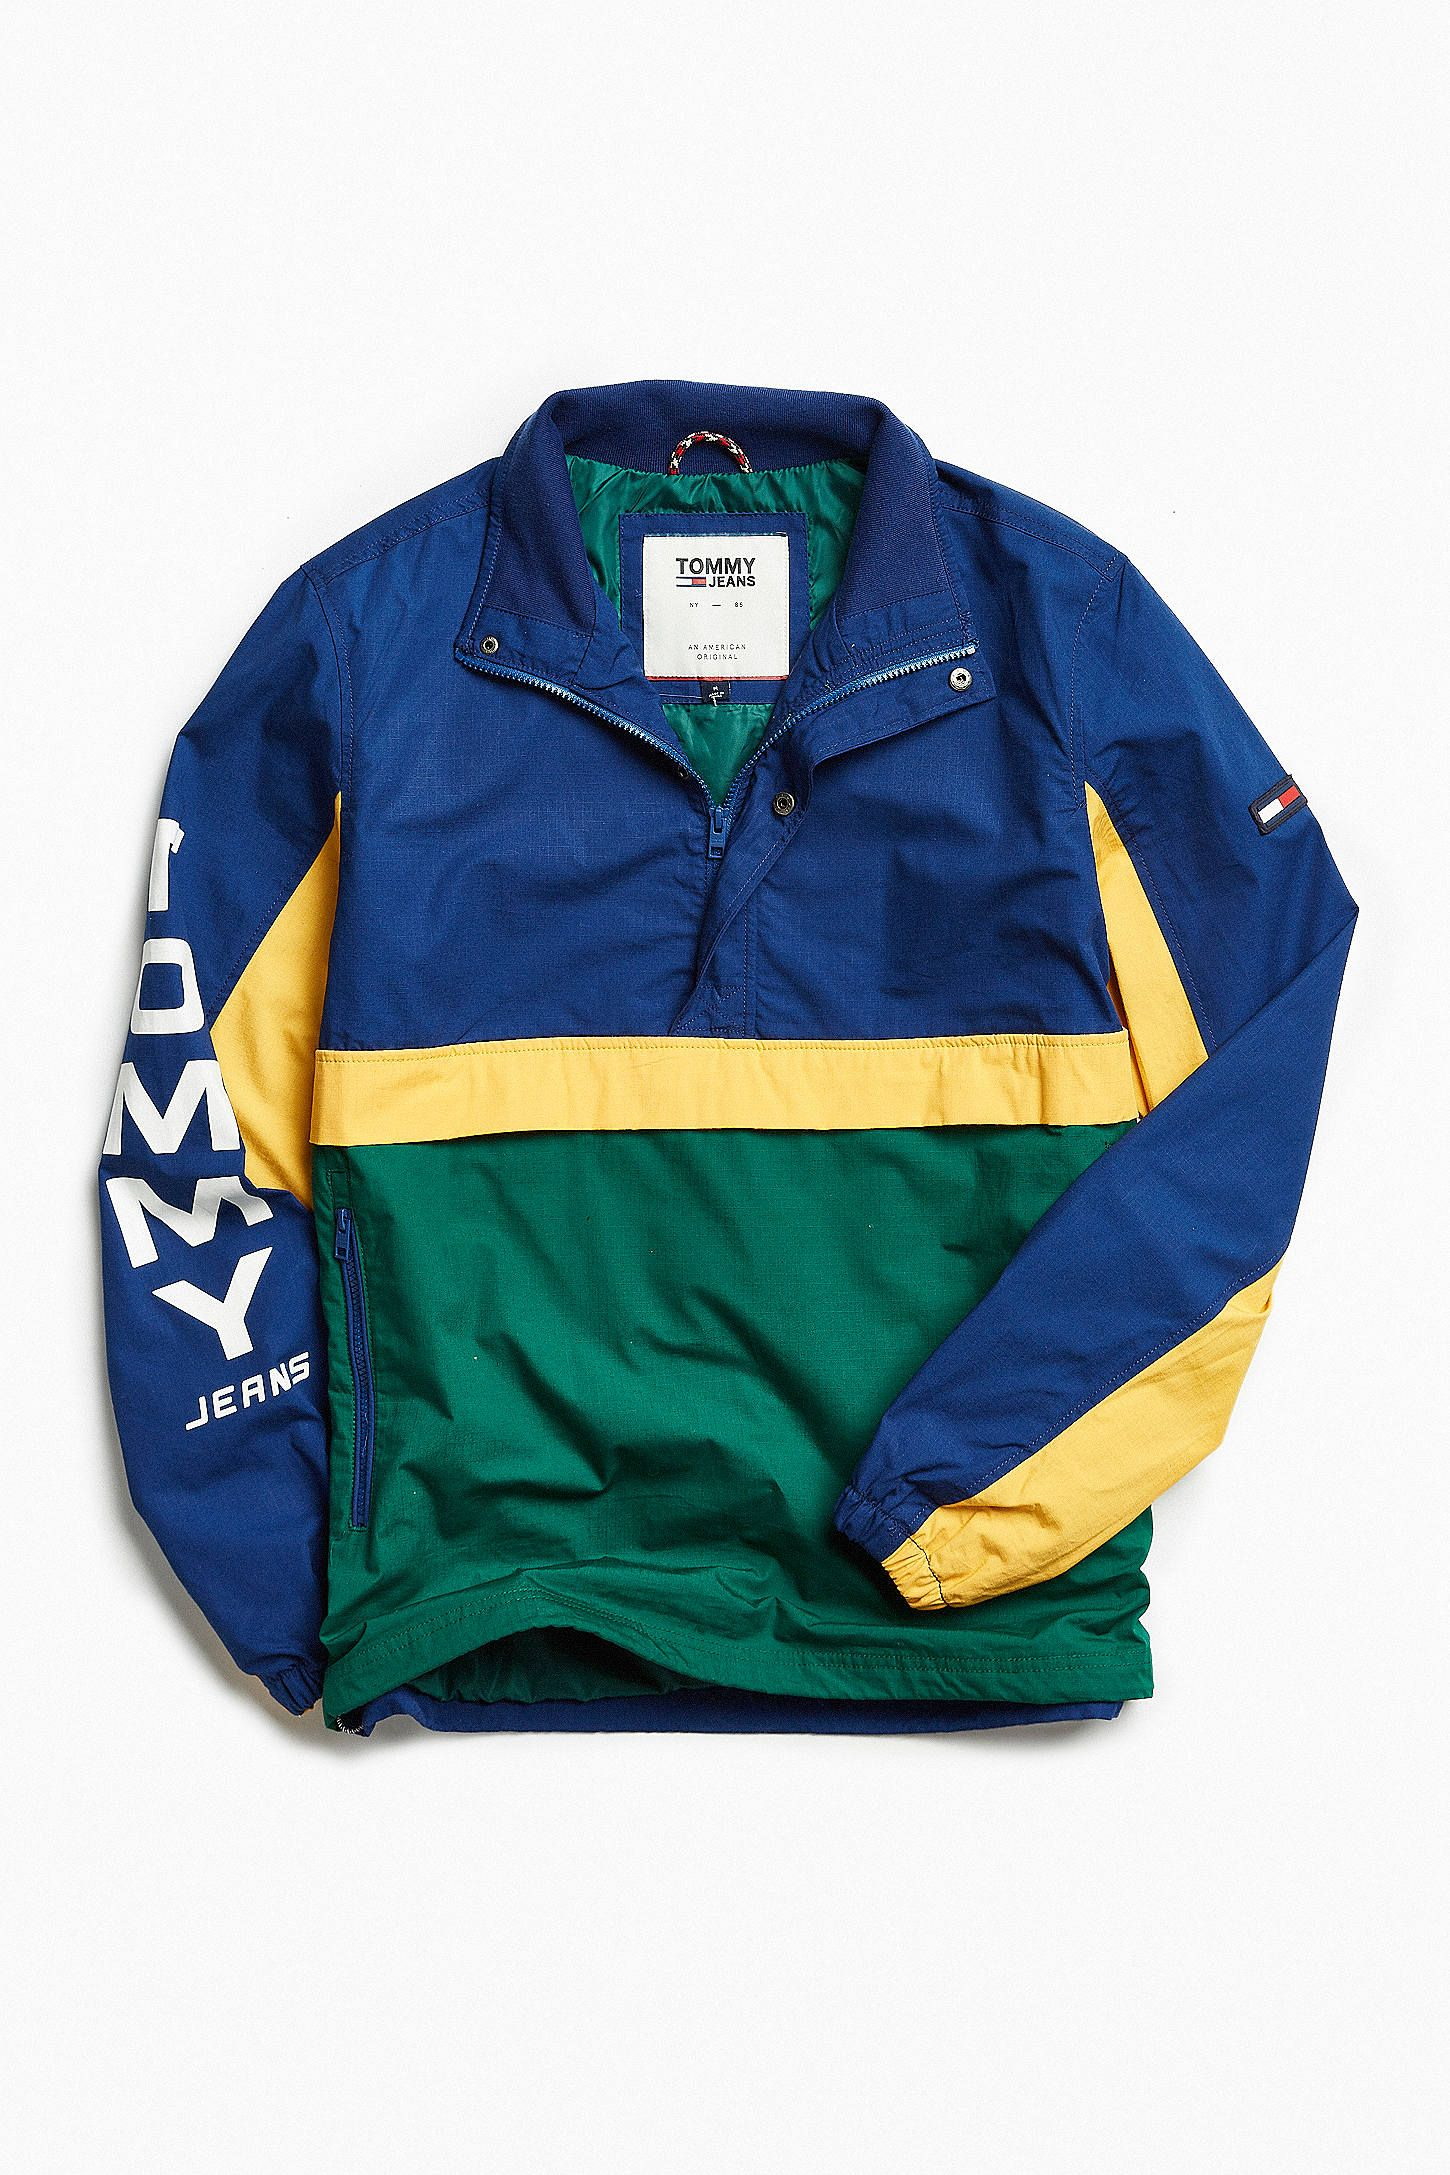 025b3ebf Shop Tommy Hilfiger Retro Block Windbreaker Jacket at Urban Outfitters  today. We carry all the latest styles, colors and brands for you to choose  from right ...